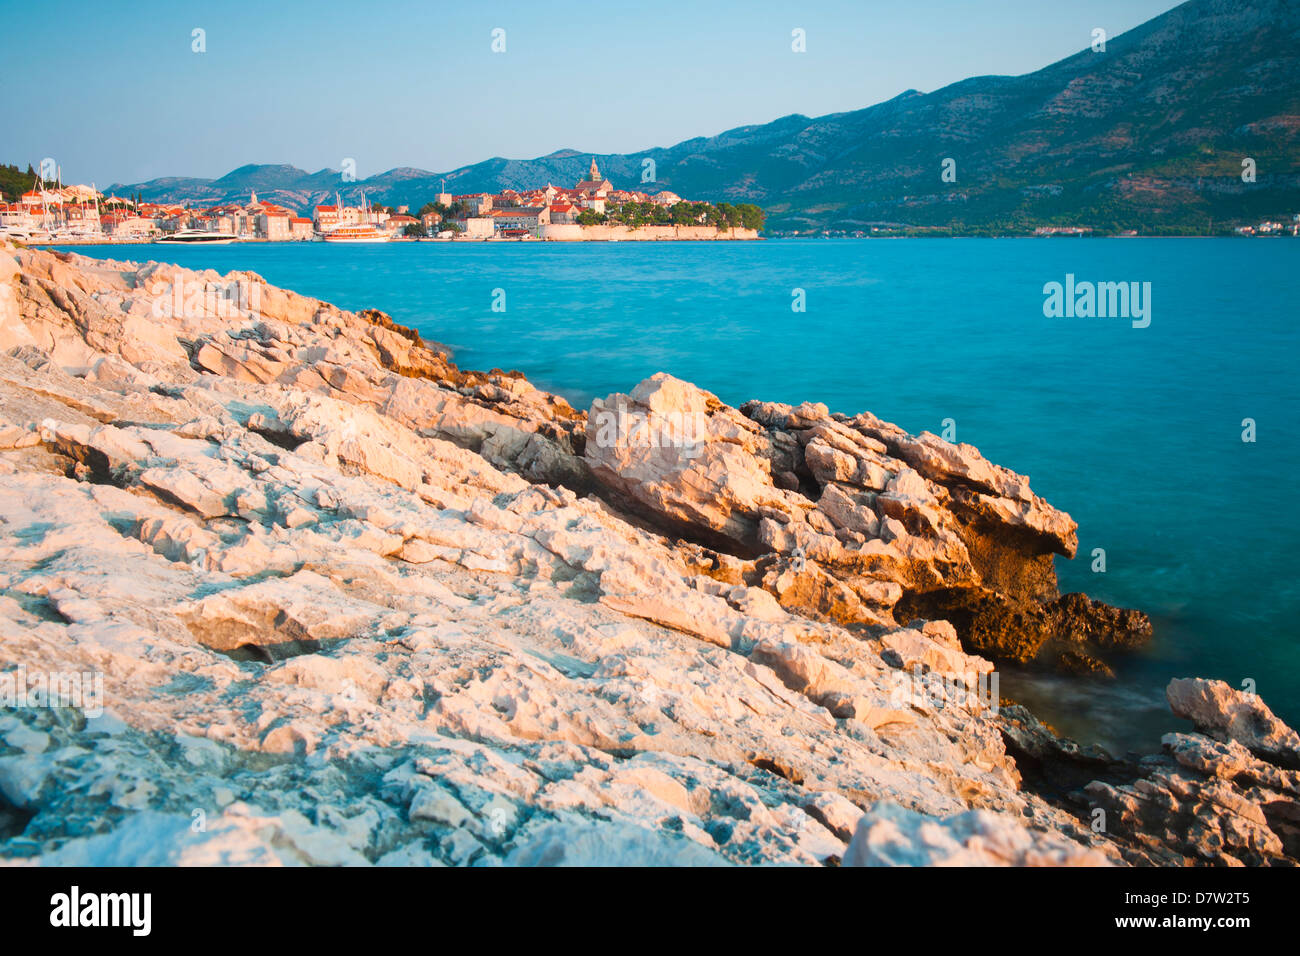 Korcula Island, Korcula Town at sunrise, Dalmatian Coast, Adriatic, Croatia - Stock Image